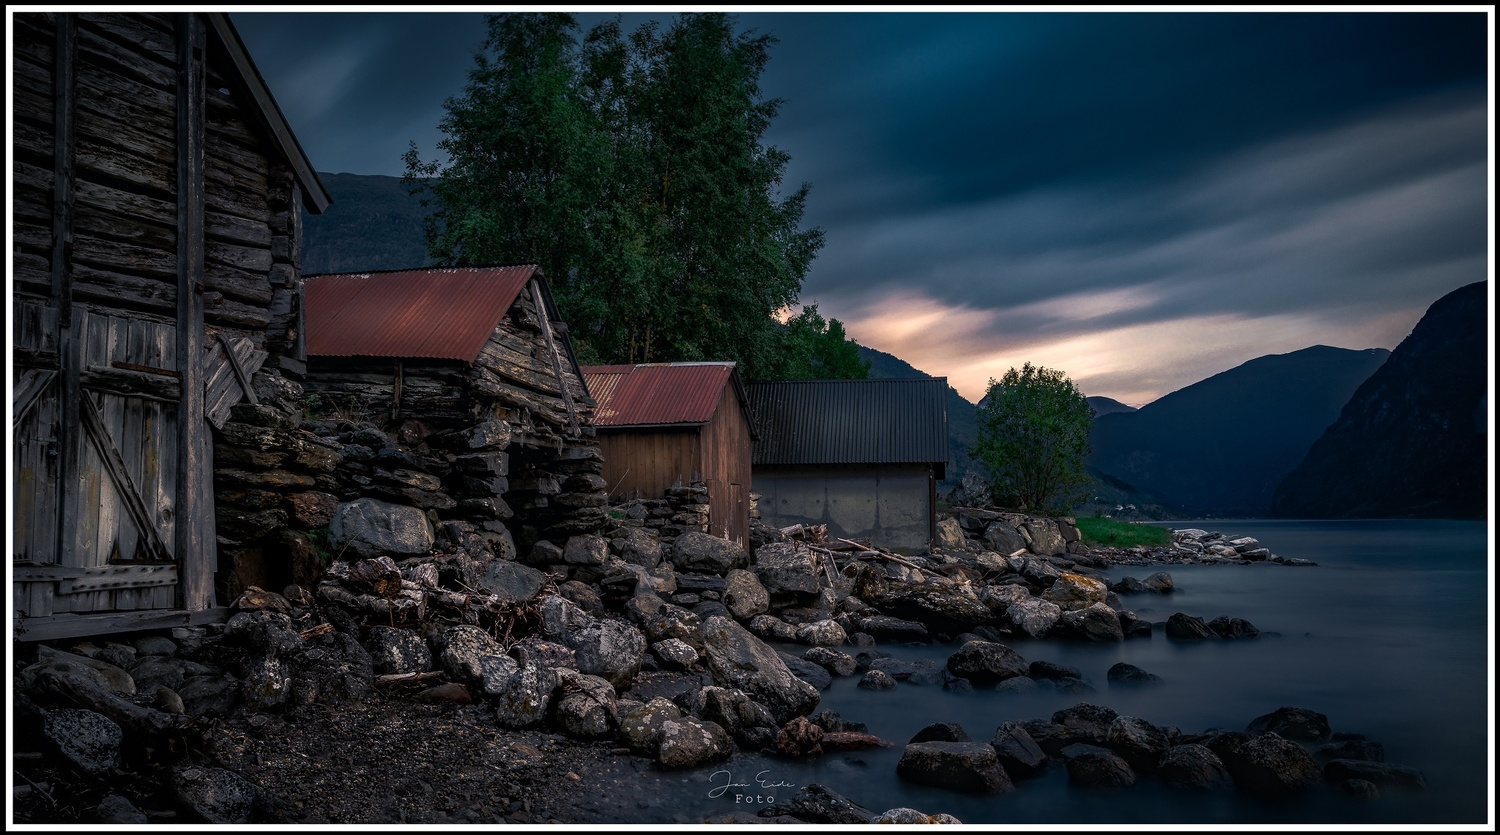 Old and Older Boathouses by Jan Eide